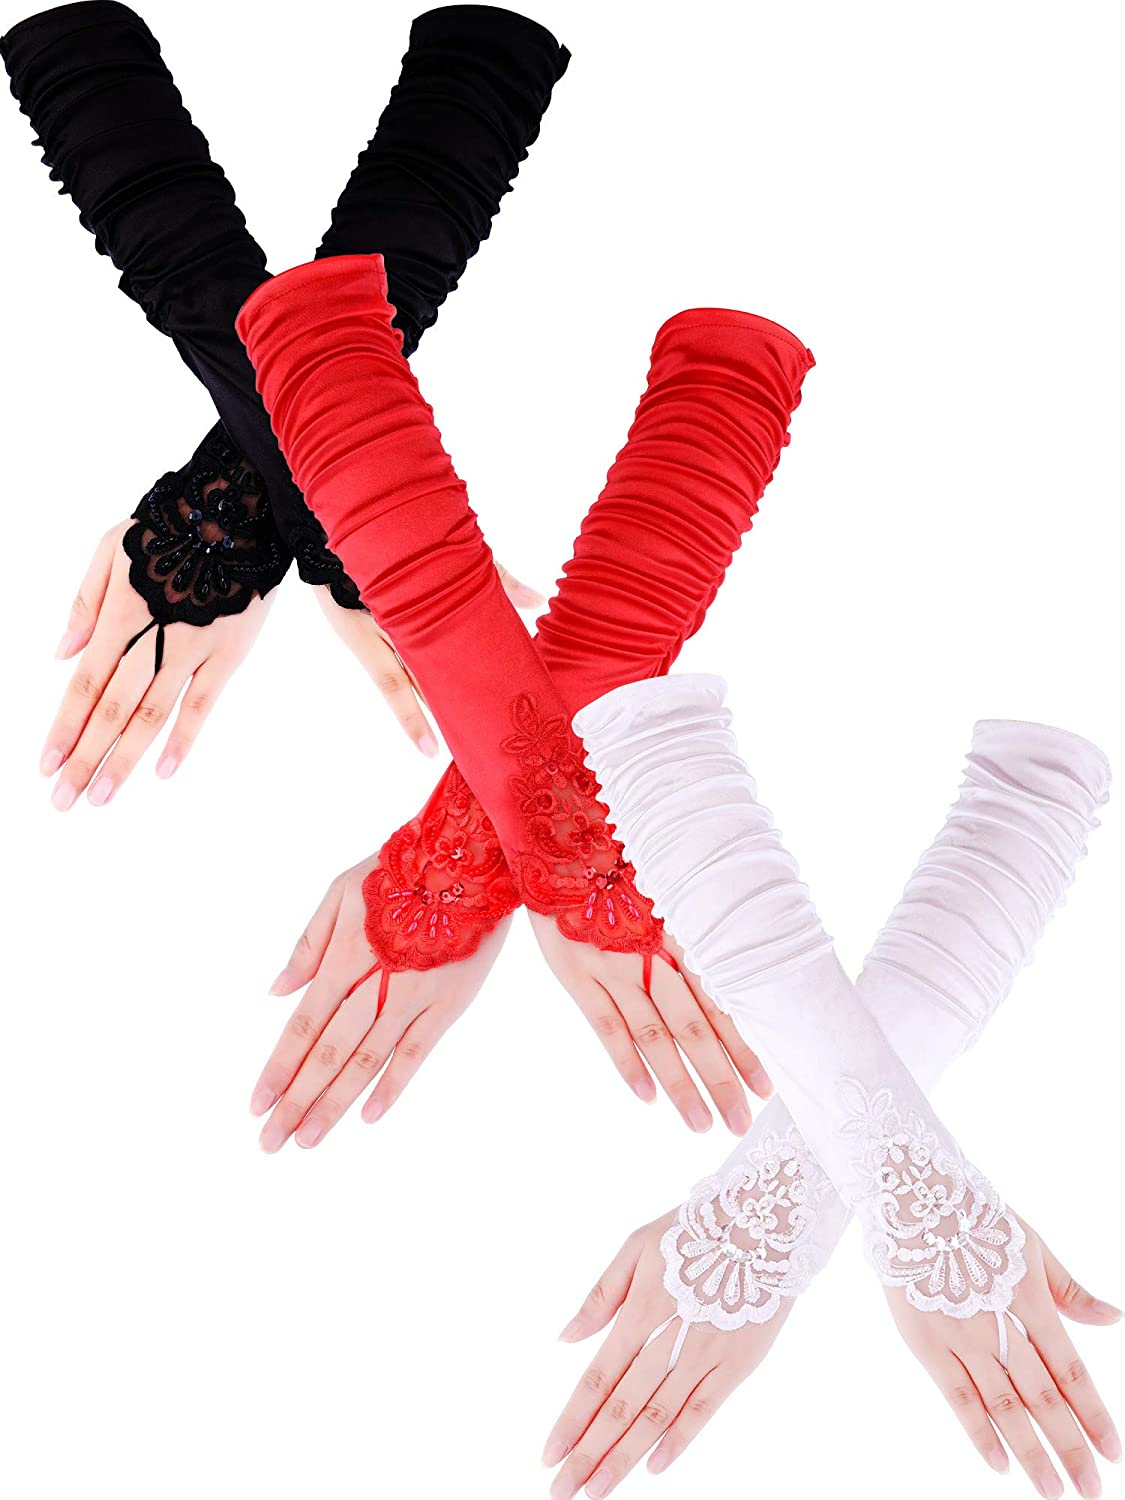 Adult Fancy Satin Lace Sequins Fingerless Elbow Length Gloves Set of 3 - DeluxeAdultCostumes.com